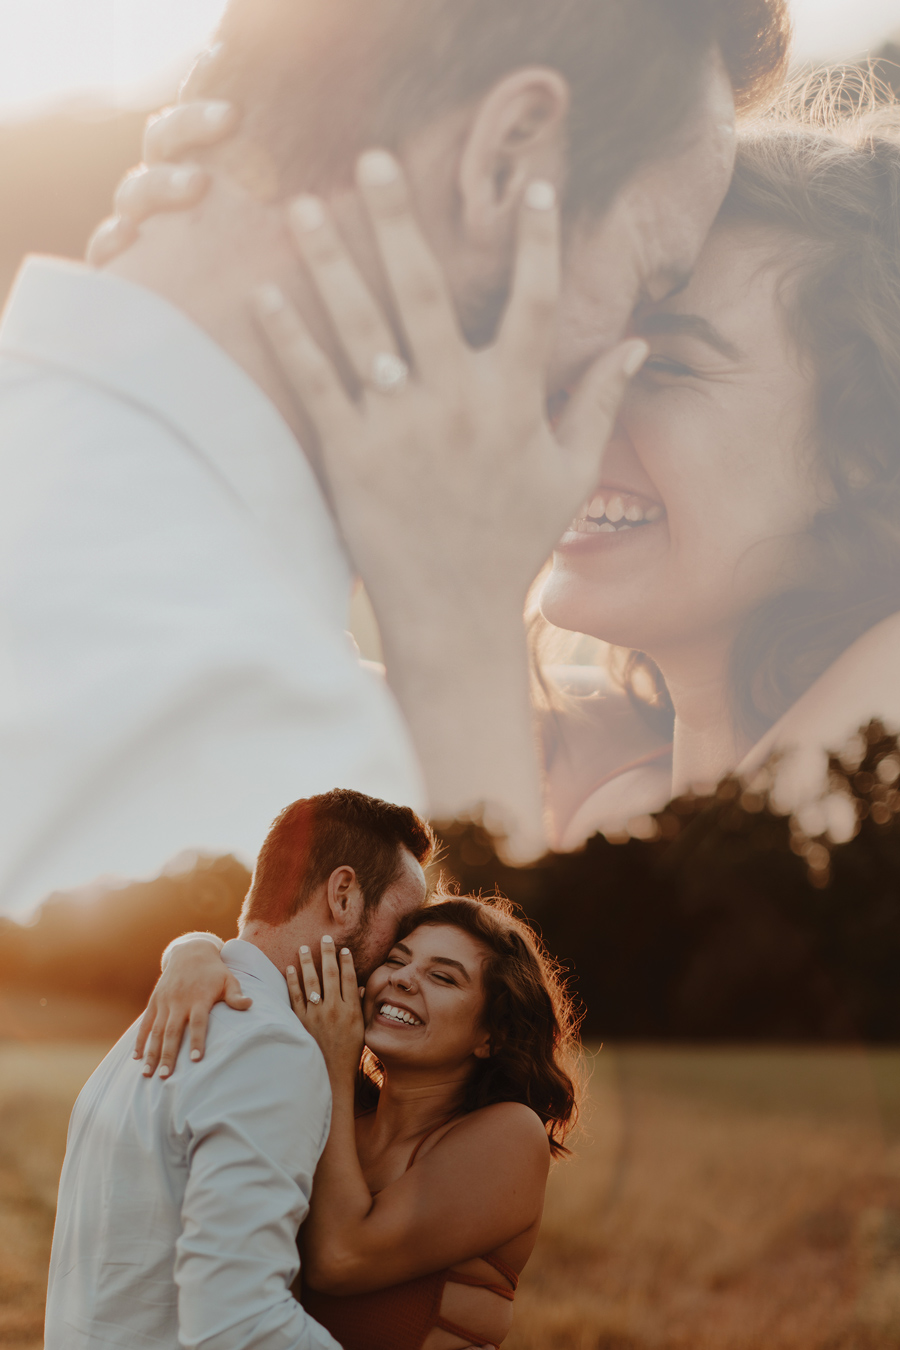 photo of engaged couple for Pinterest